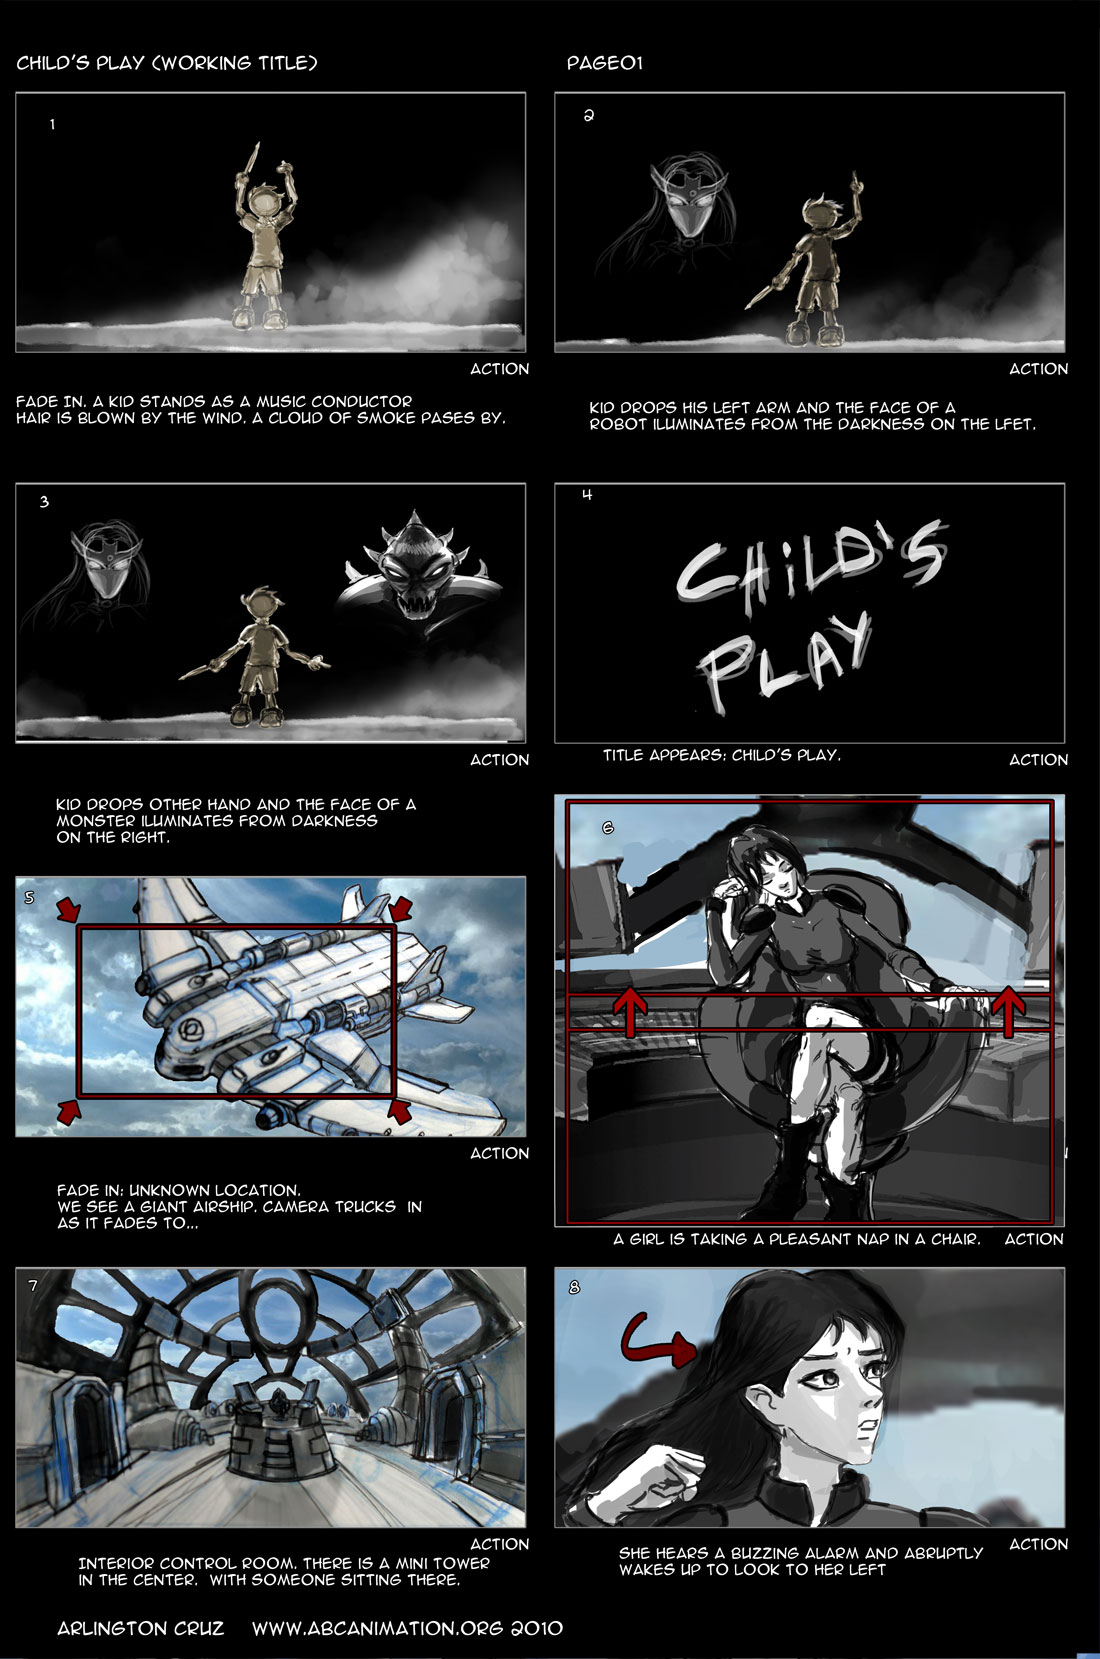 child's-play-page-01.jpg